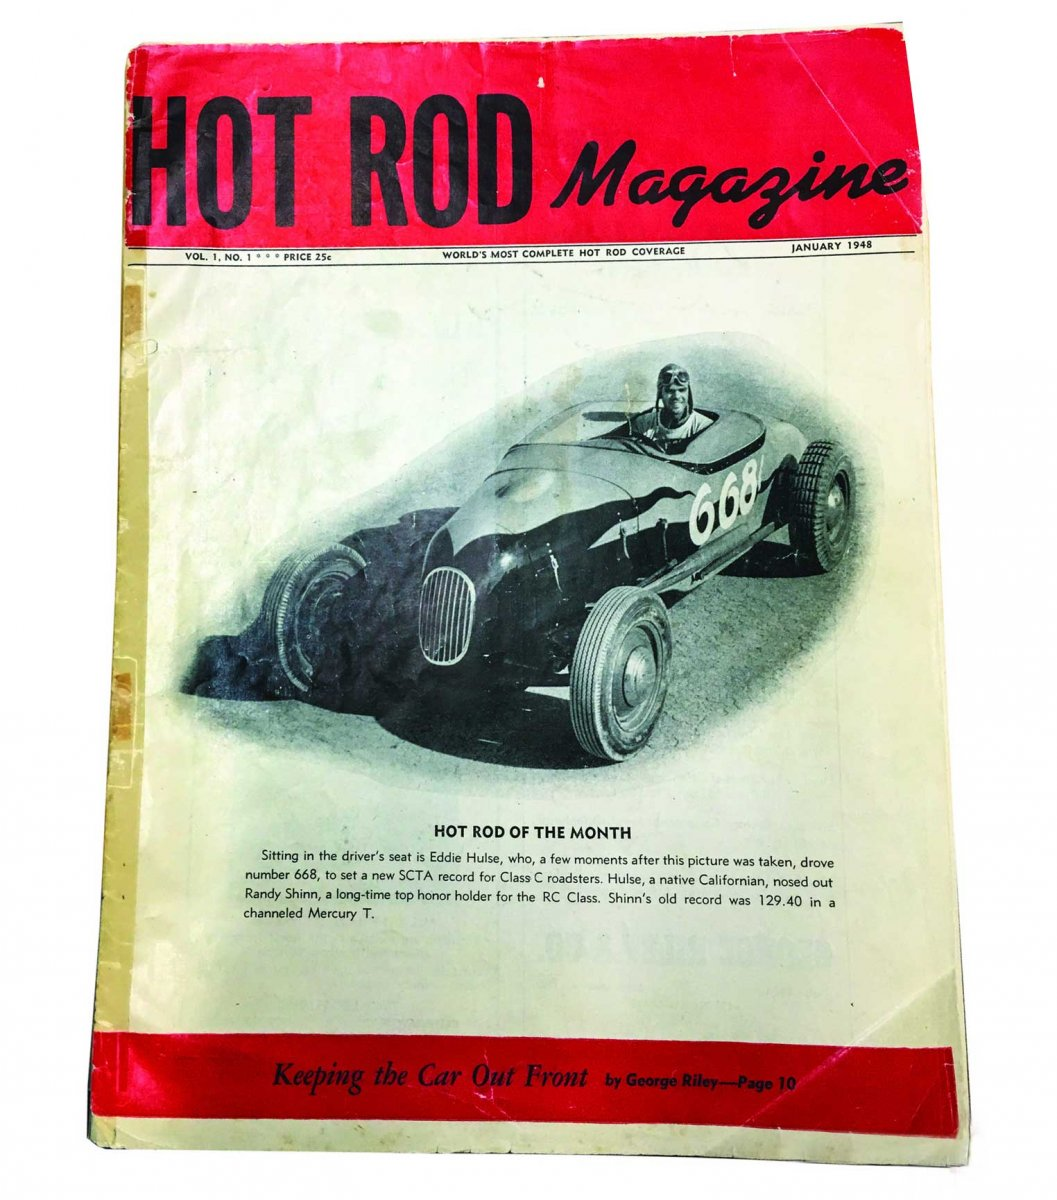 hot-rod-magazine-issue-1-1.jpg